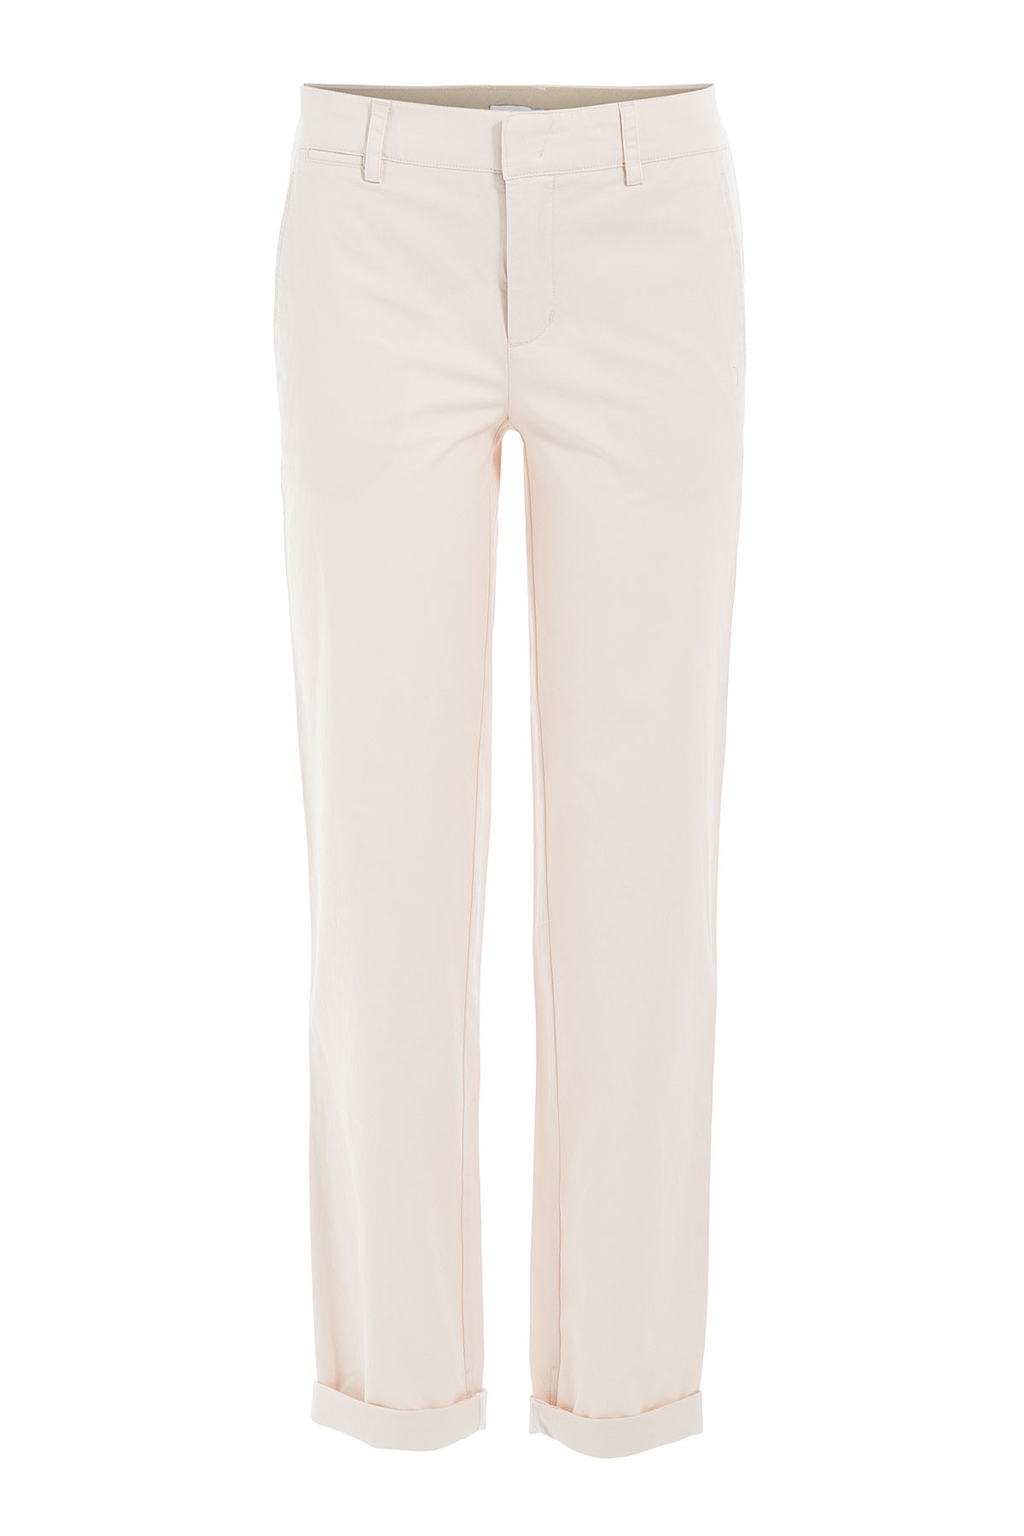 Stretch Cotton Chinos - pattern: plain; waist: mid/regular rise; predominant colour: ivory/cream; occasions: casual, creative work; length: ankle length; fibres: cotton - 100%; texture group: cotton feel fabrics; fit: slim leg; pattern type: fabric; style: standard; season: s/s 2016; wardrobe: basic